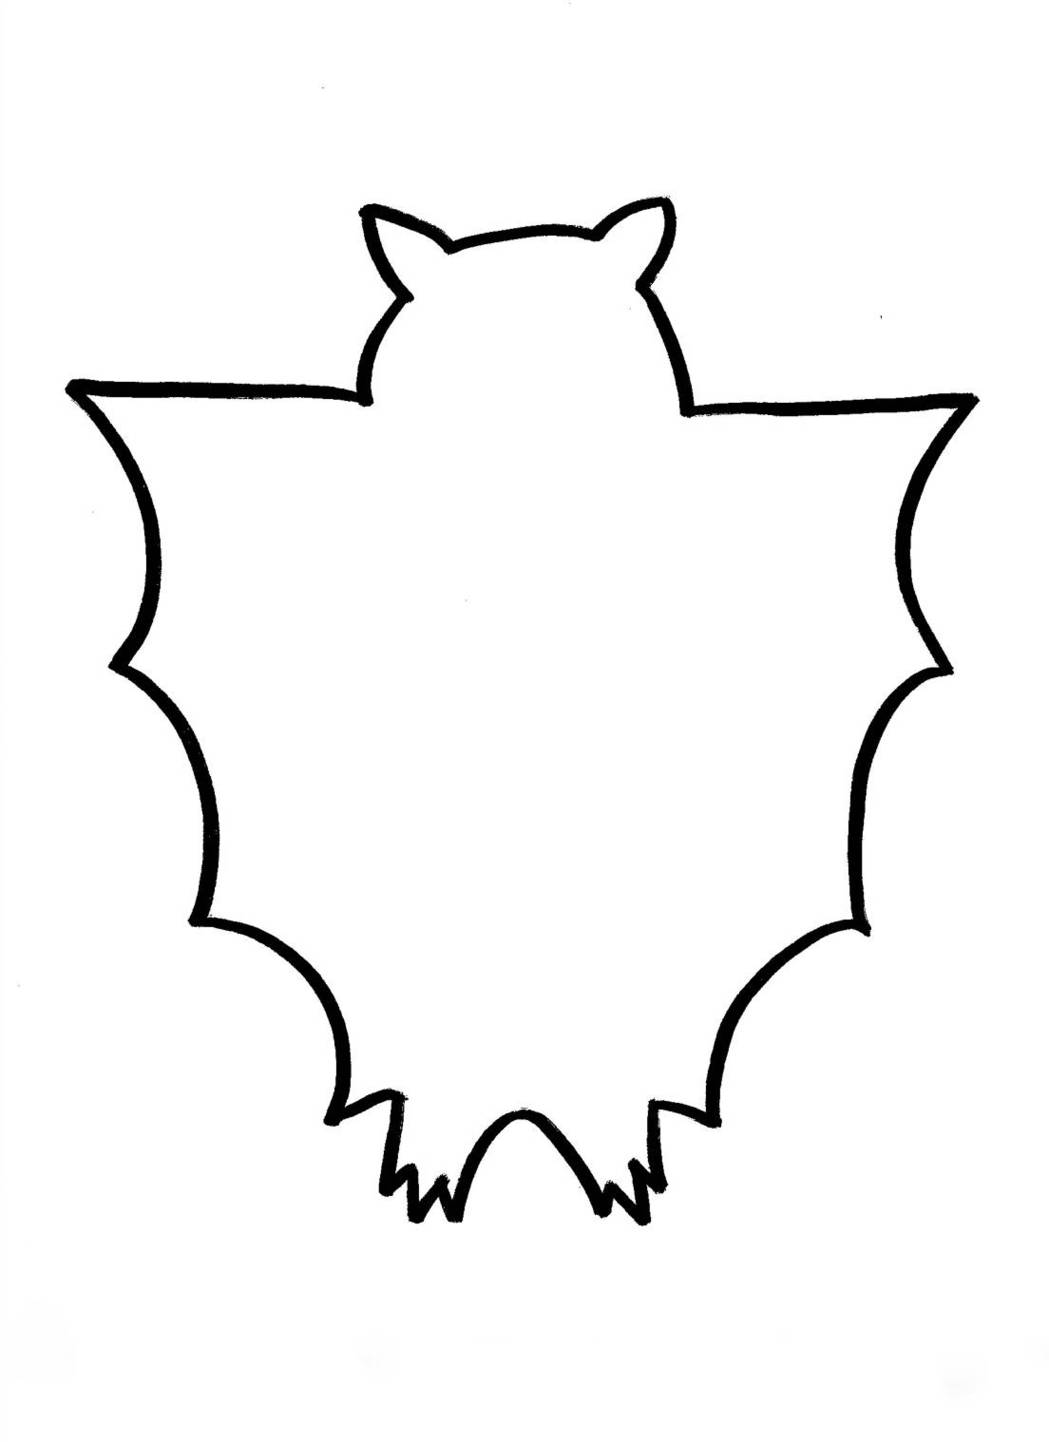 bat candy bar wrapper template - images of the outlines of bats clipart best